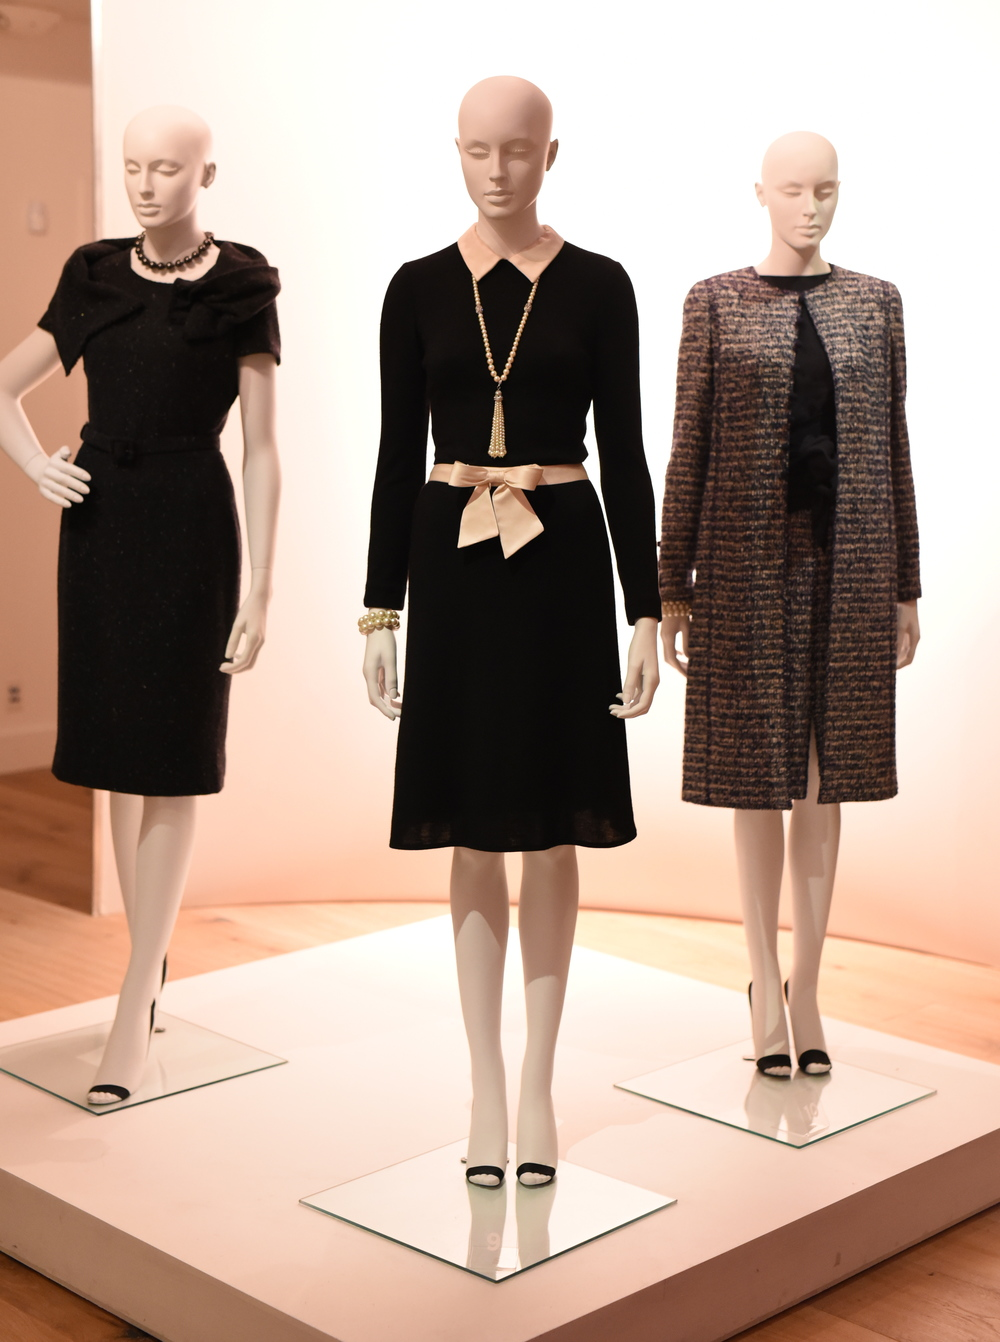 The dress in the middle is from Oscar de la Renta's first collection in 1965.